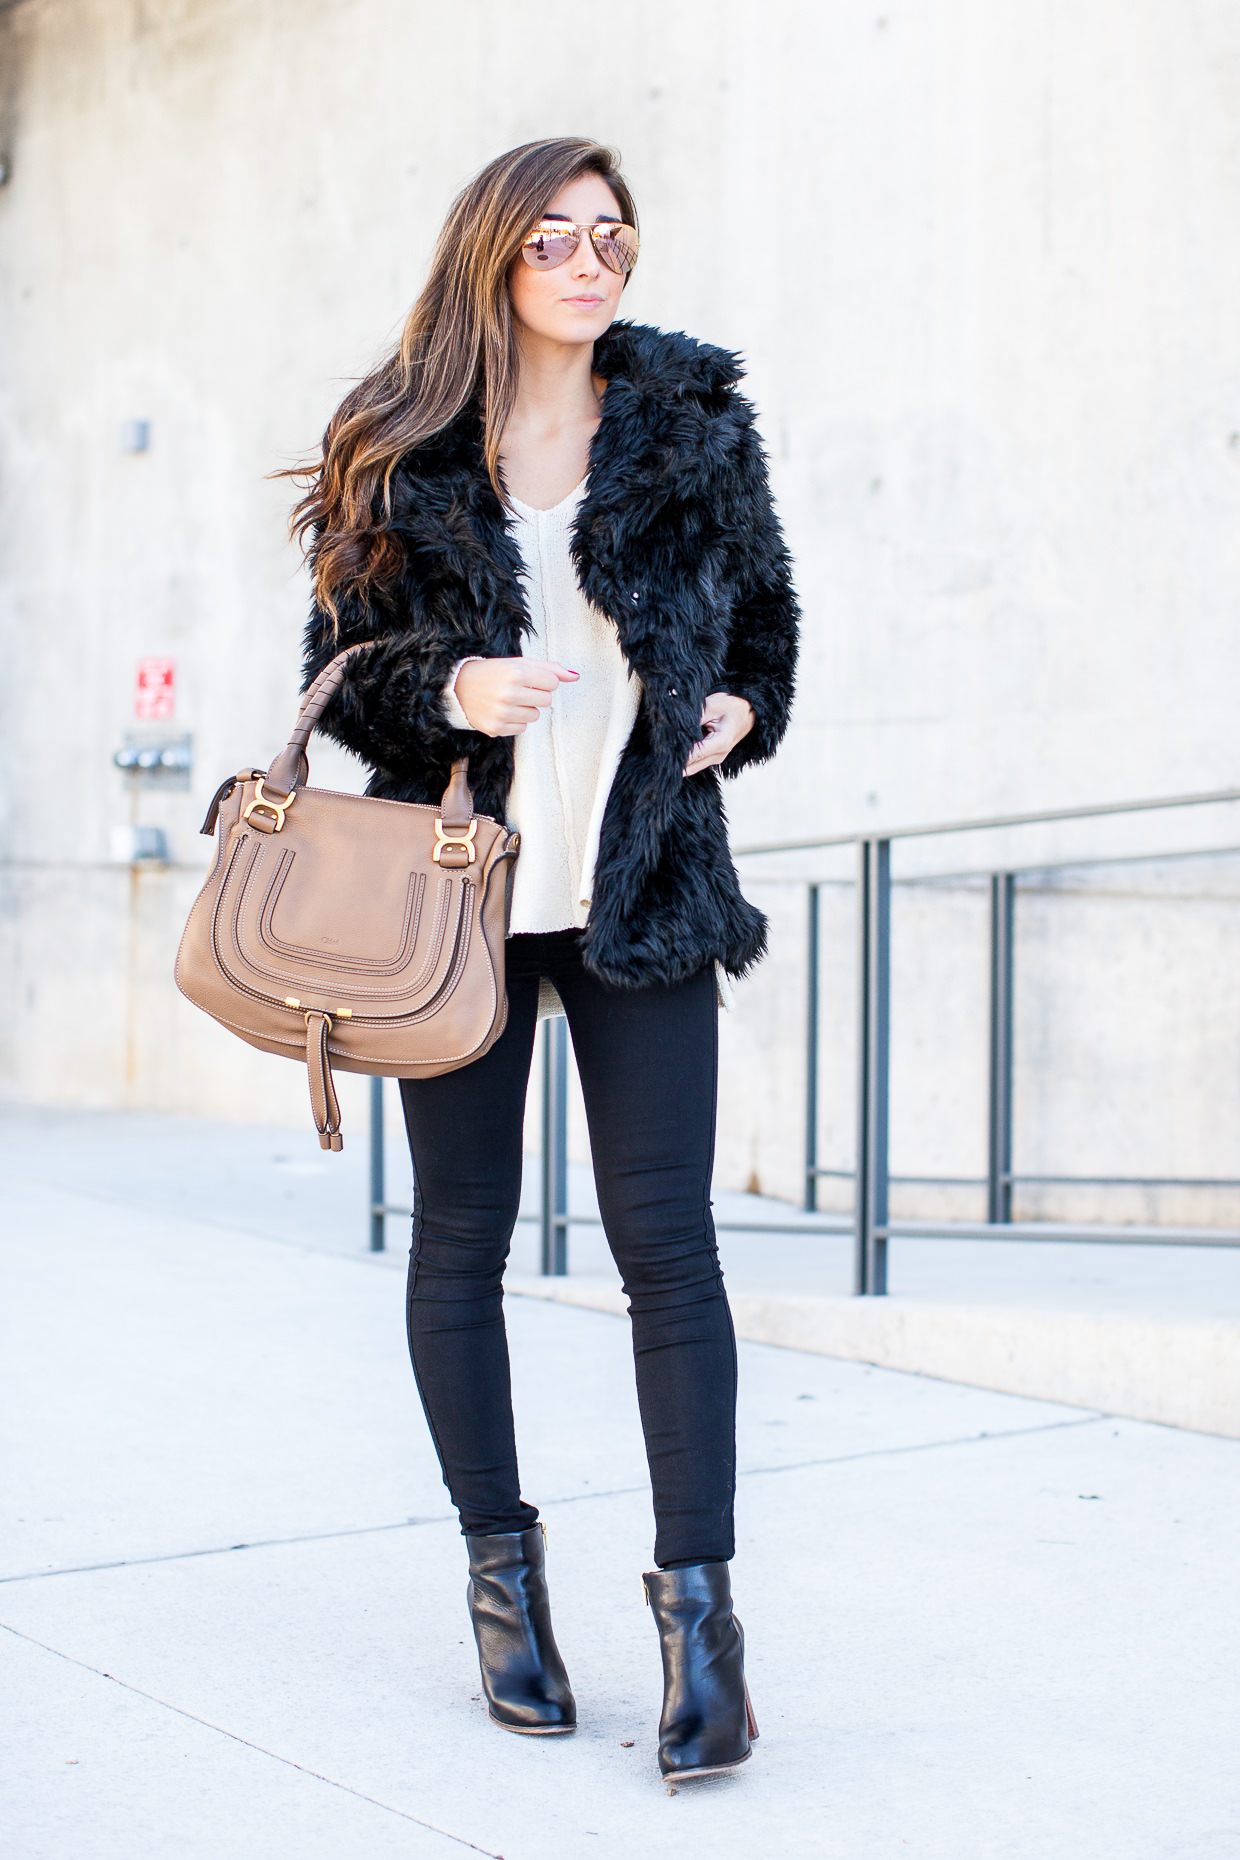 A fluffy coat like this will always afford you a sophisticated style, and will add a glamorous dimension to any outfit! Jessi wears this piece with a simple blouse and jeans. Outfit: Nordstrom.